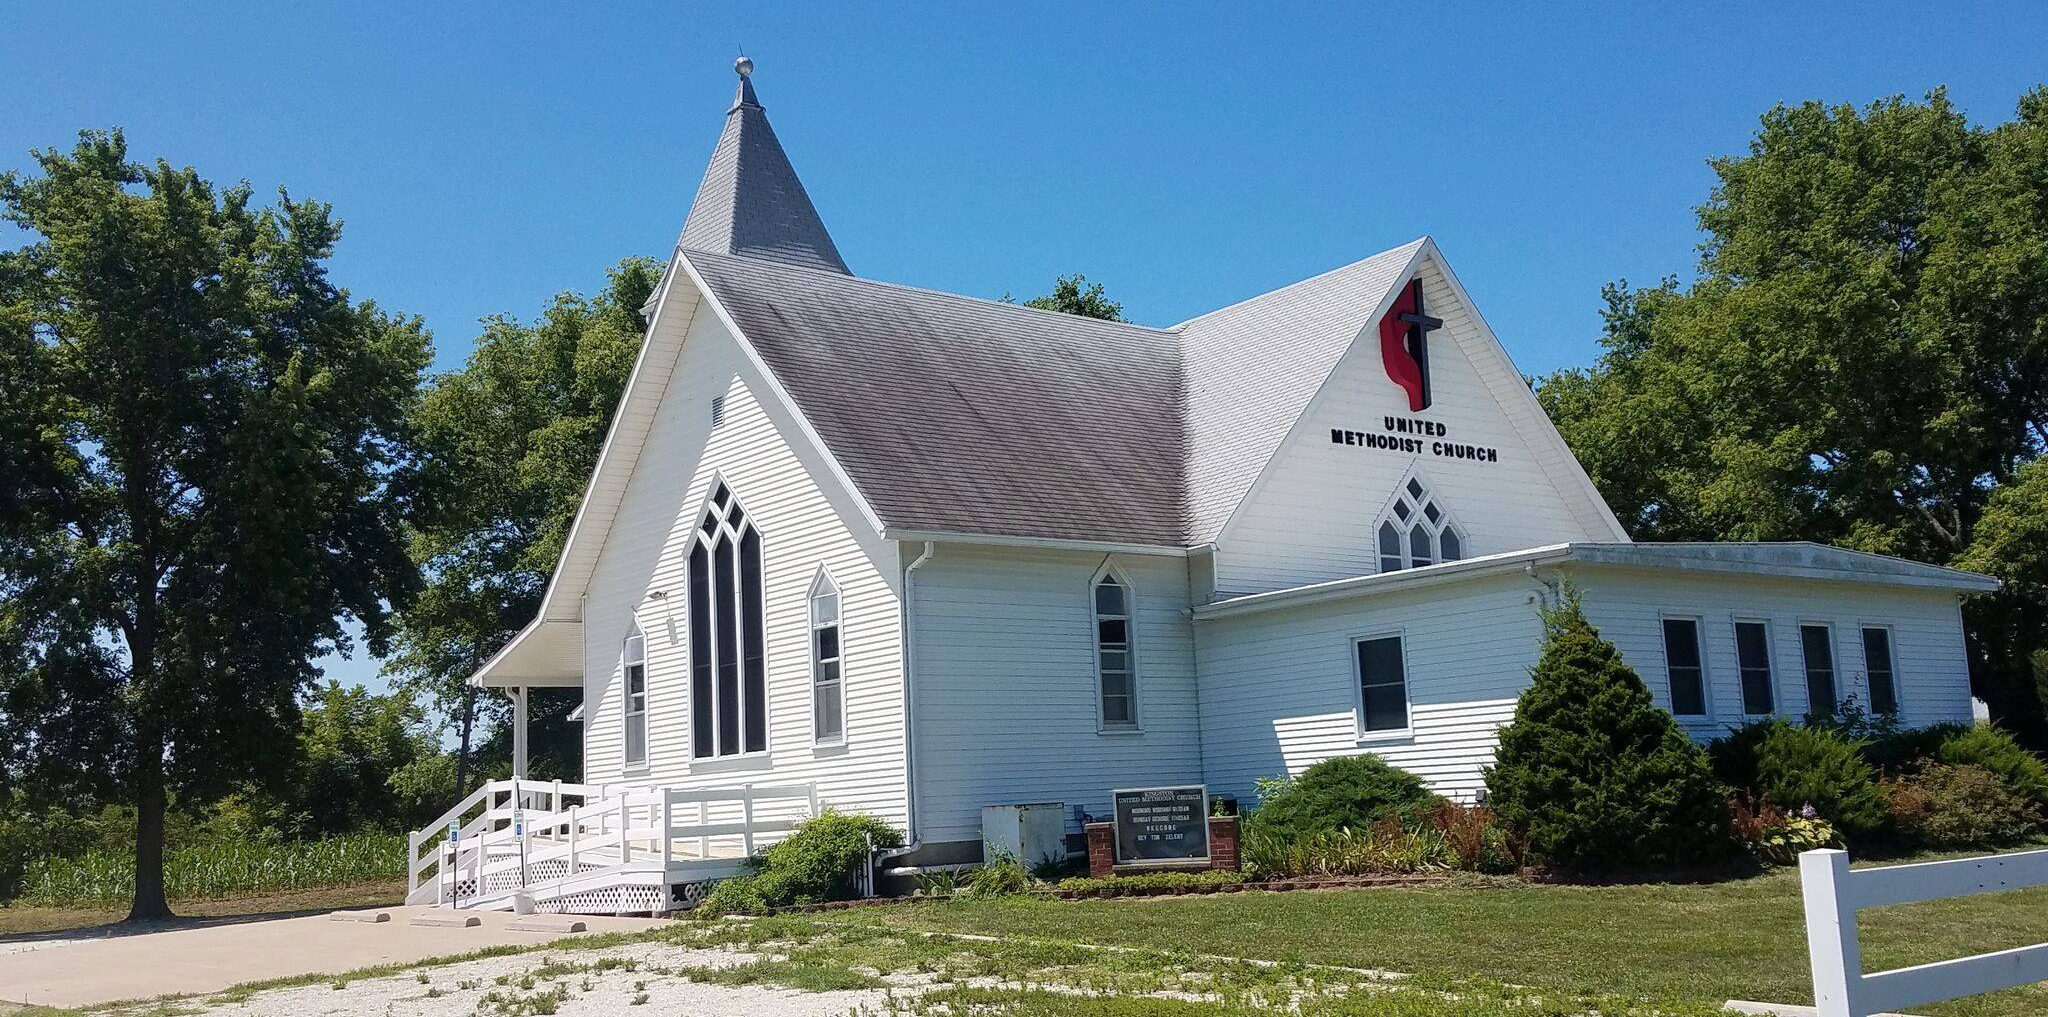 United Methodist Church, Kingston, IA